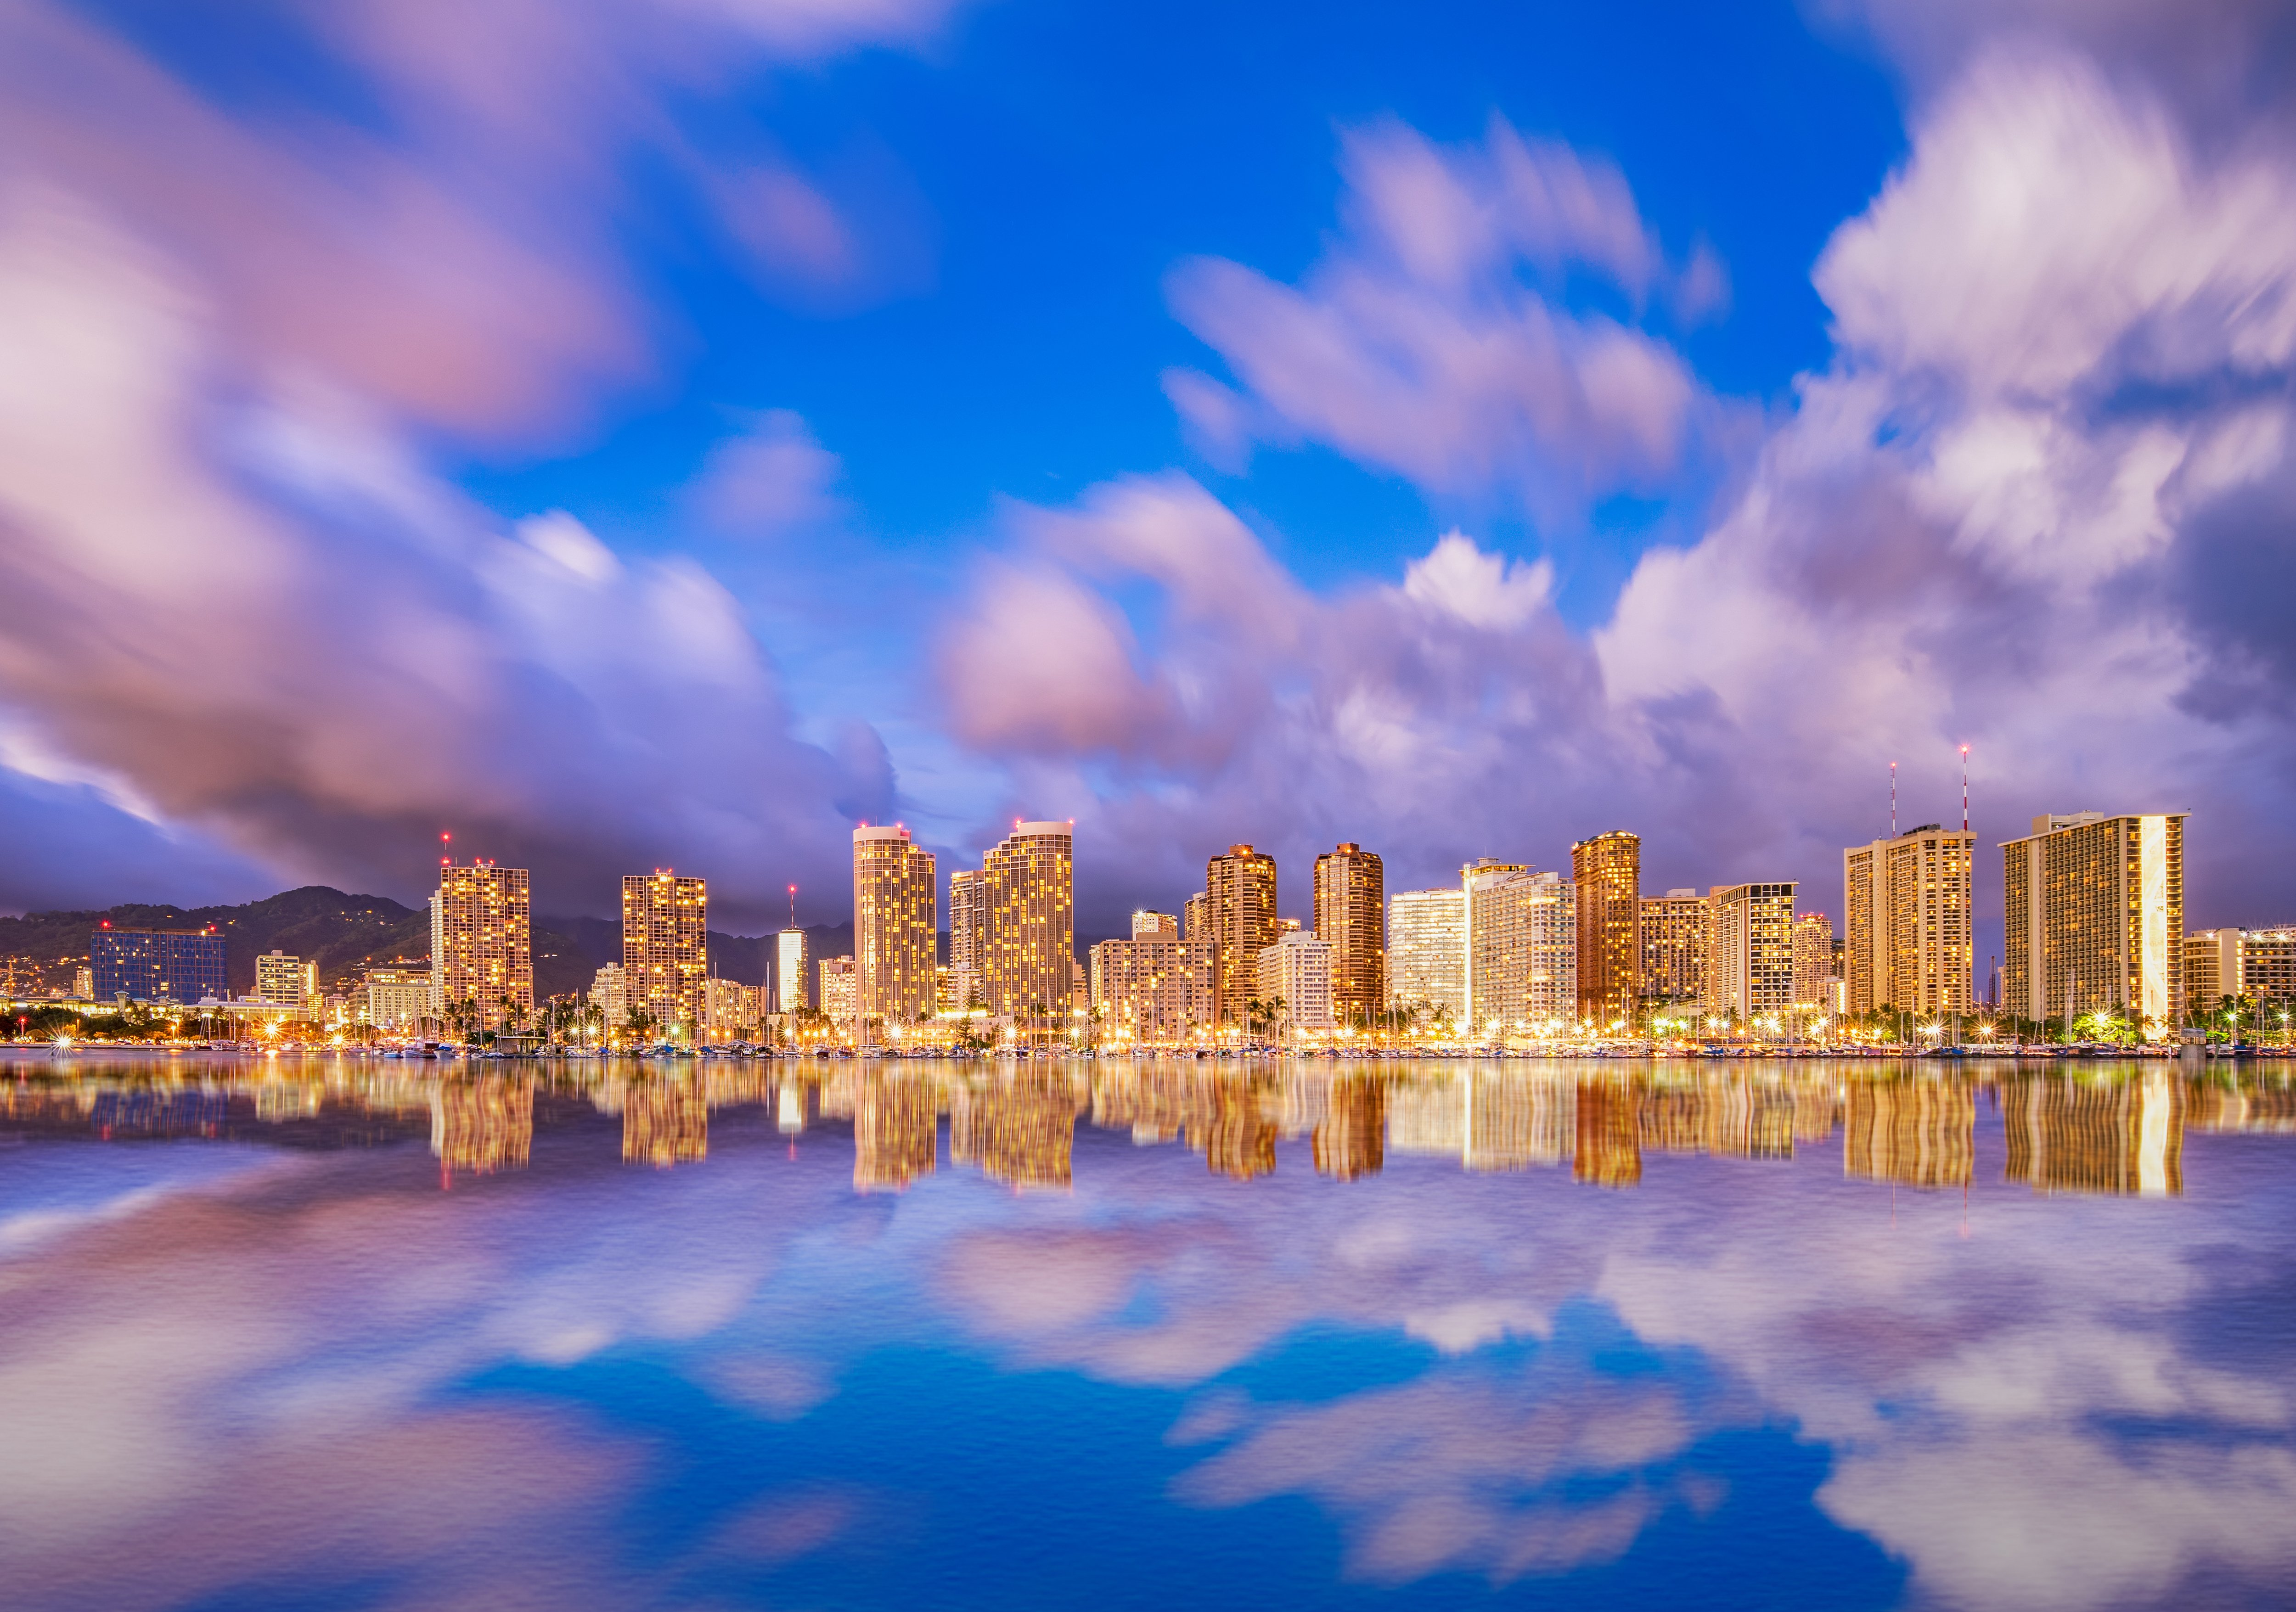 Waikiki Sunset 4k Ultra HD Wallpaper Background Image 5000x3511